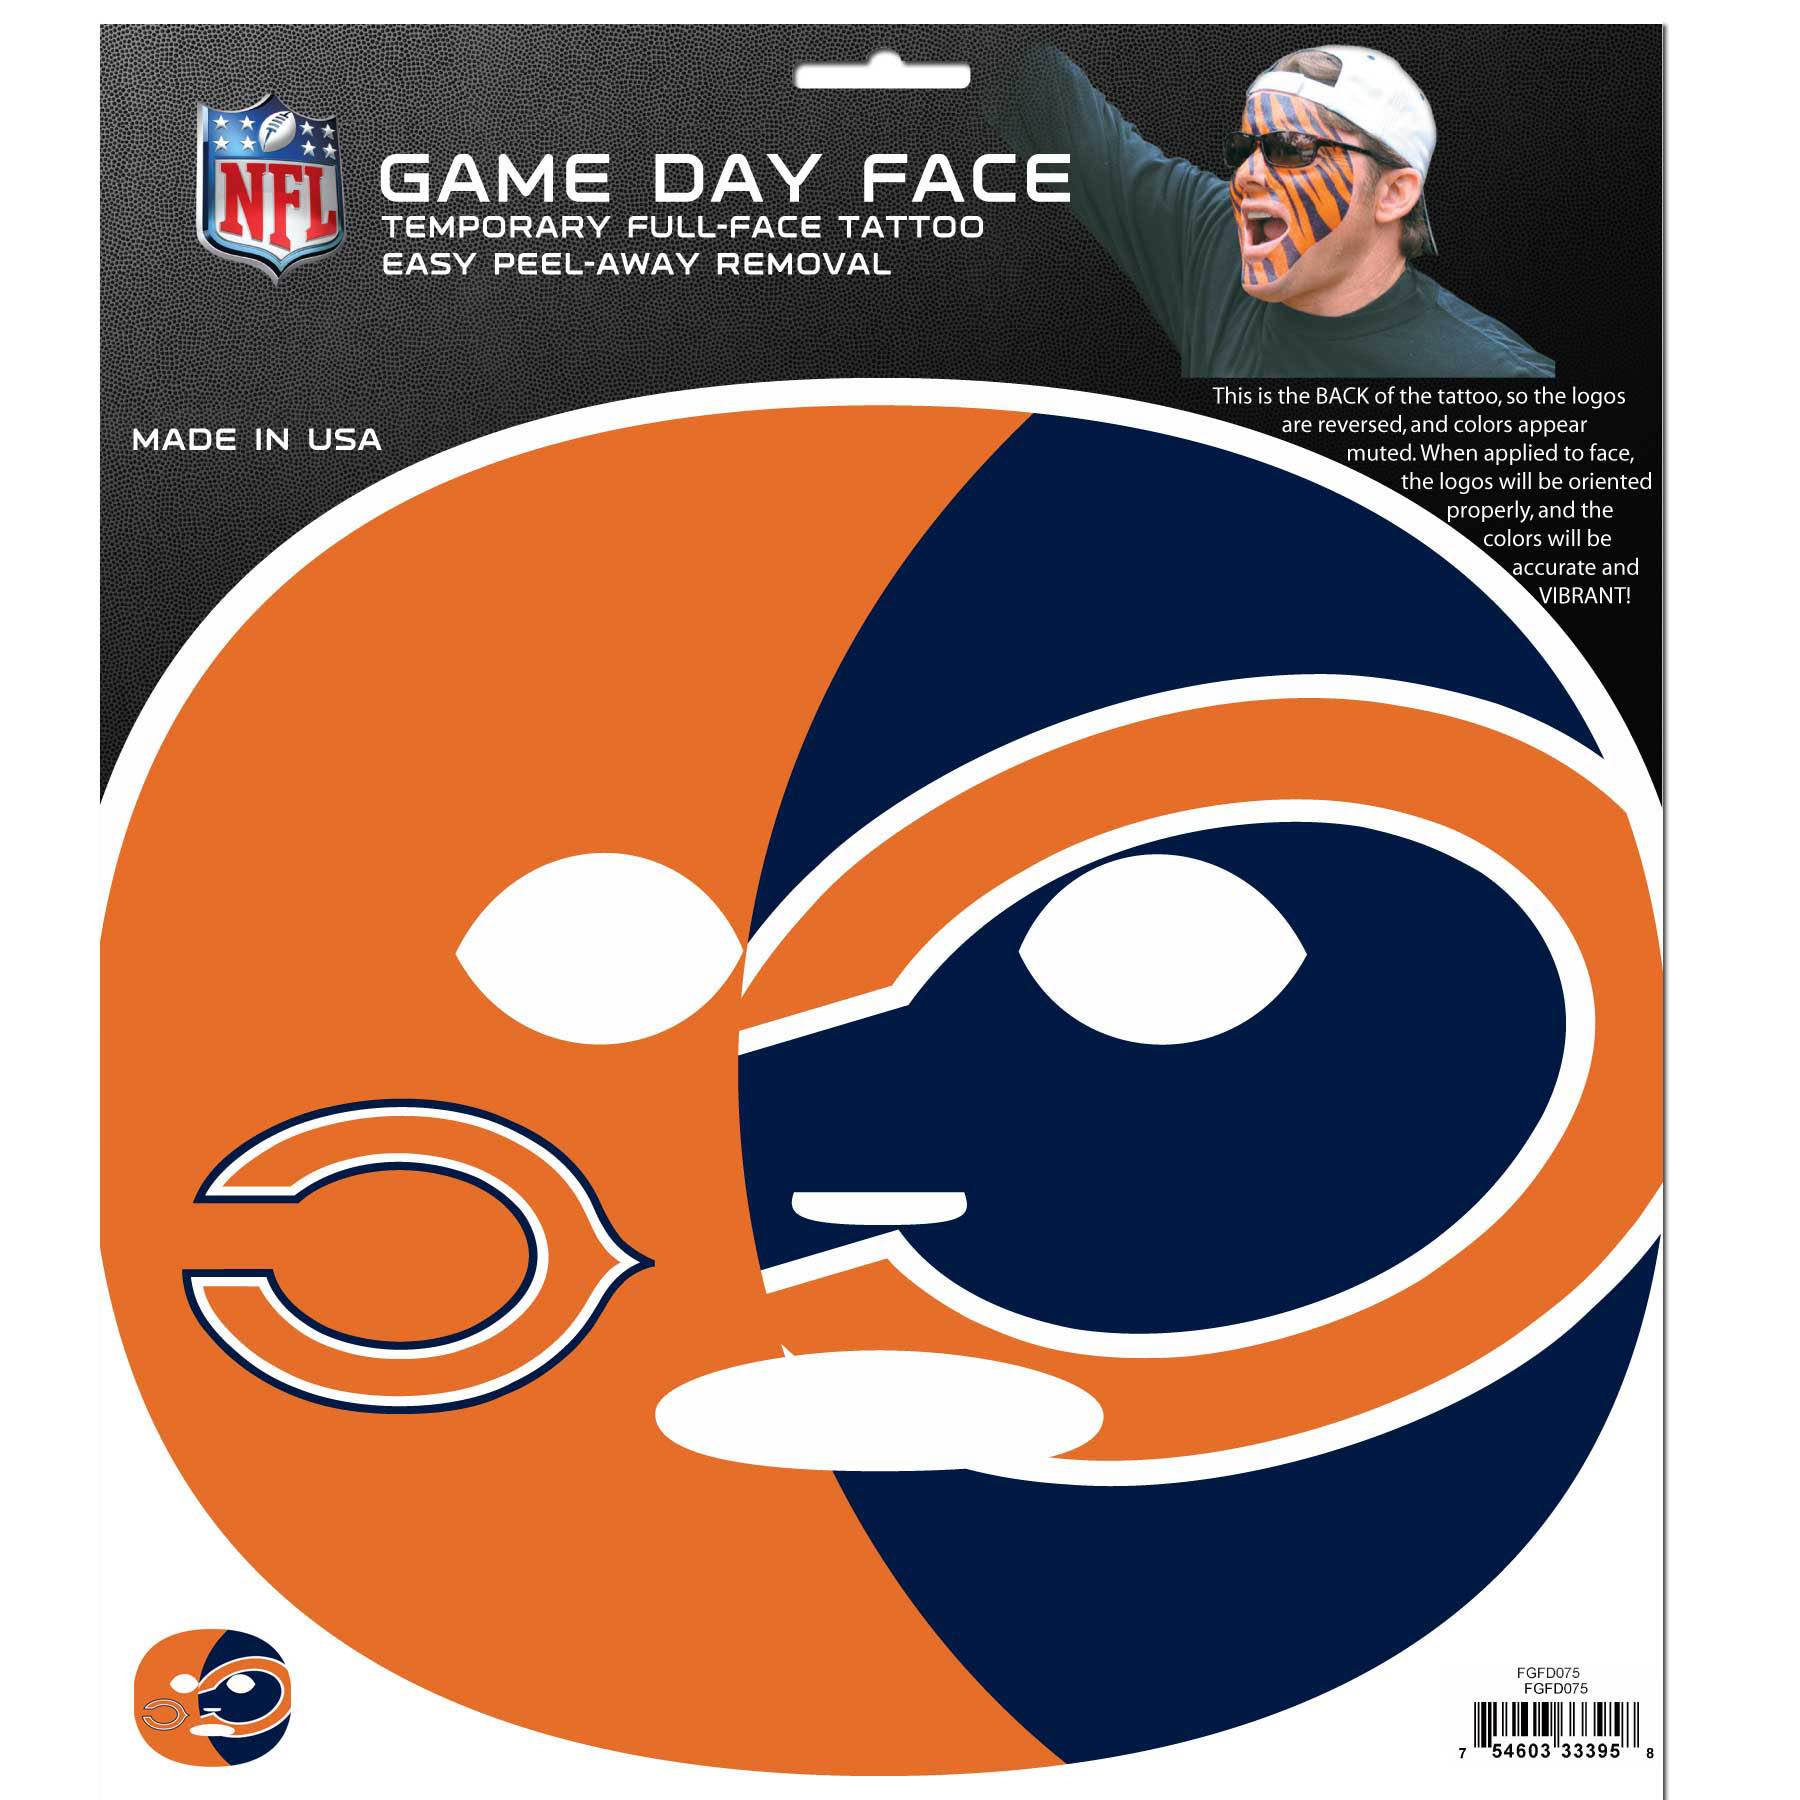 Chicago Bears Set of 4 Game Day Faces - No better way to show your team pride than by painting your face. Siskiyou's Game Day Face Temporary Tattoo isn't your typical face paint. It is a water based application that doesn't smudge, smear or sweat off while you're wearing it and easily peels off after you're done celebrating your team's big Win! The temporary tattoo is large enough to trim down to fit your face. Our Game Day Face Temporary Tattoo's are fun for fans of all ages. You may have seen our product before, these are the same Temporary Face Tattoos as pitched on ABC's Shark Tank.